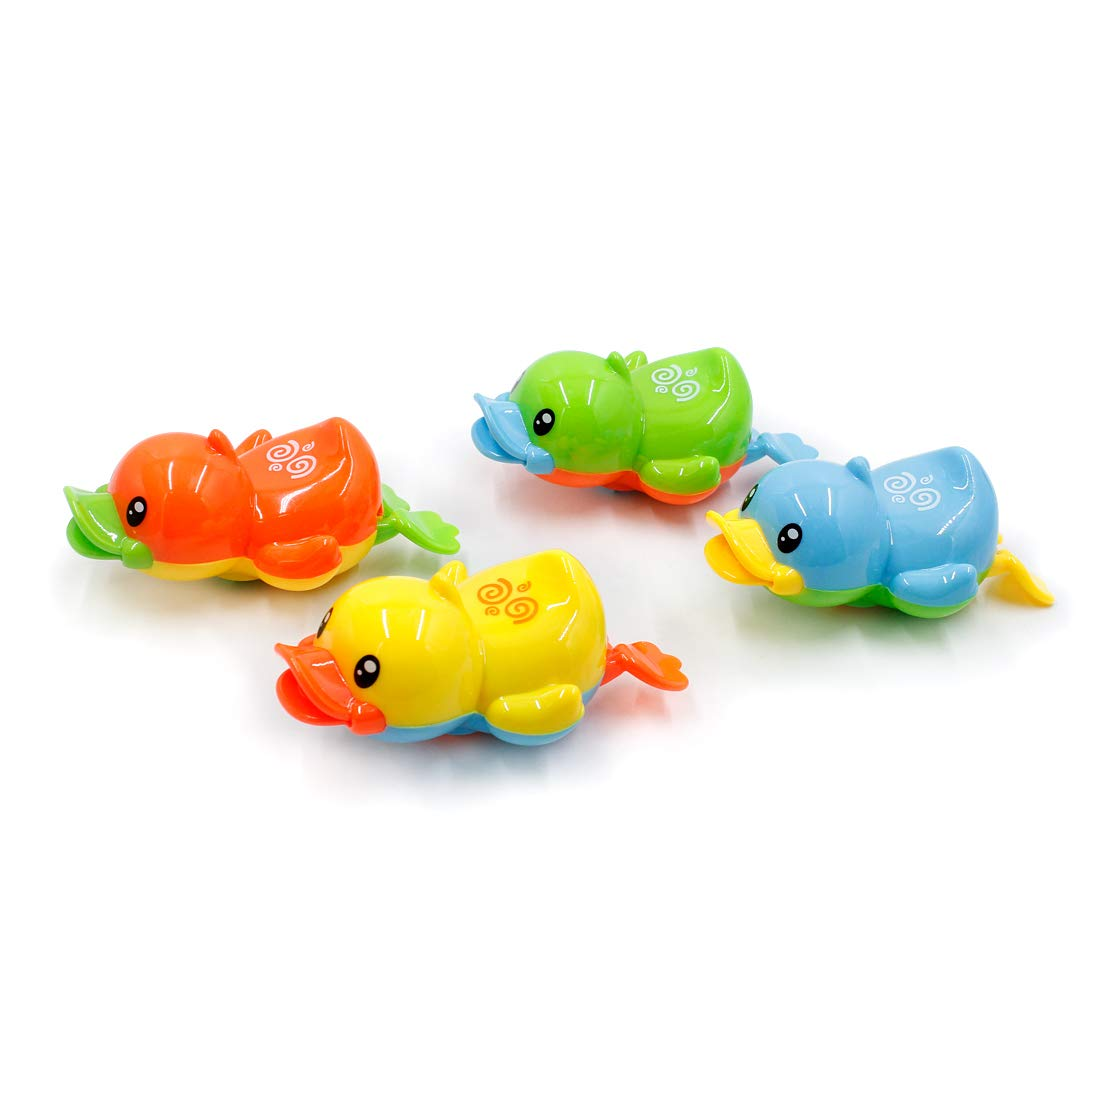 4 Pack SHENZHEN BEIHUI TECHNOLOGY CO LTD. BEIHUI Swimming Water Wind Up Kids Baby Bath Toys Bathtub tub Duck Floating Animal Toys for Toddlers Boys Girls at 1 2 3 Years Old